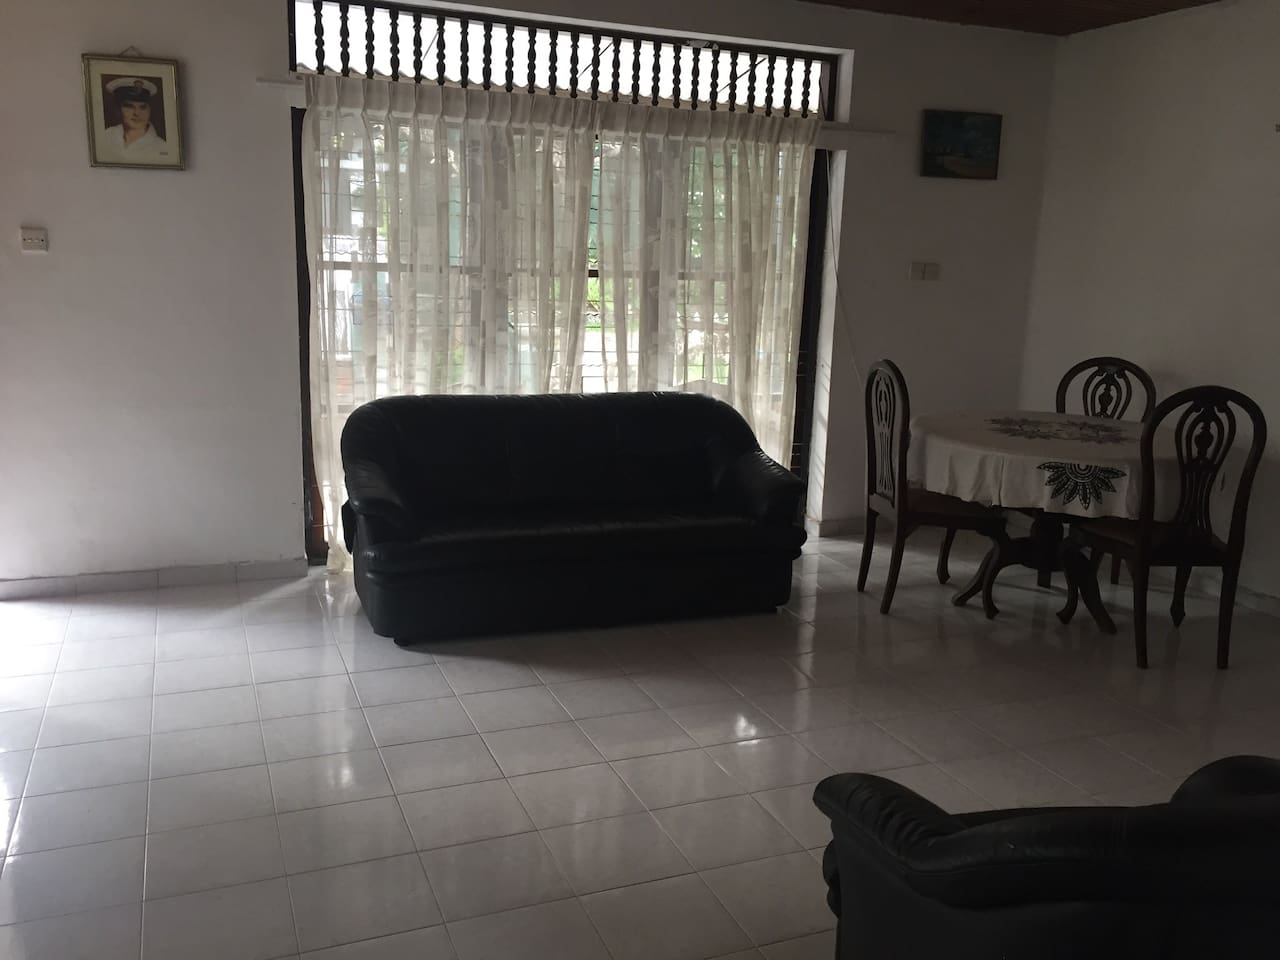 Chilled out space close to beach! $5 off if no AC